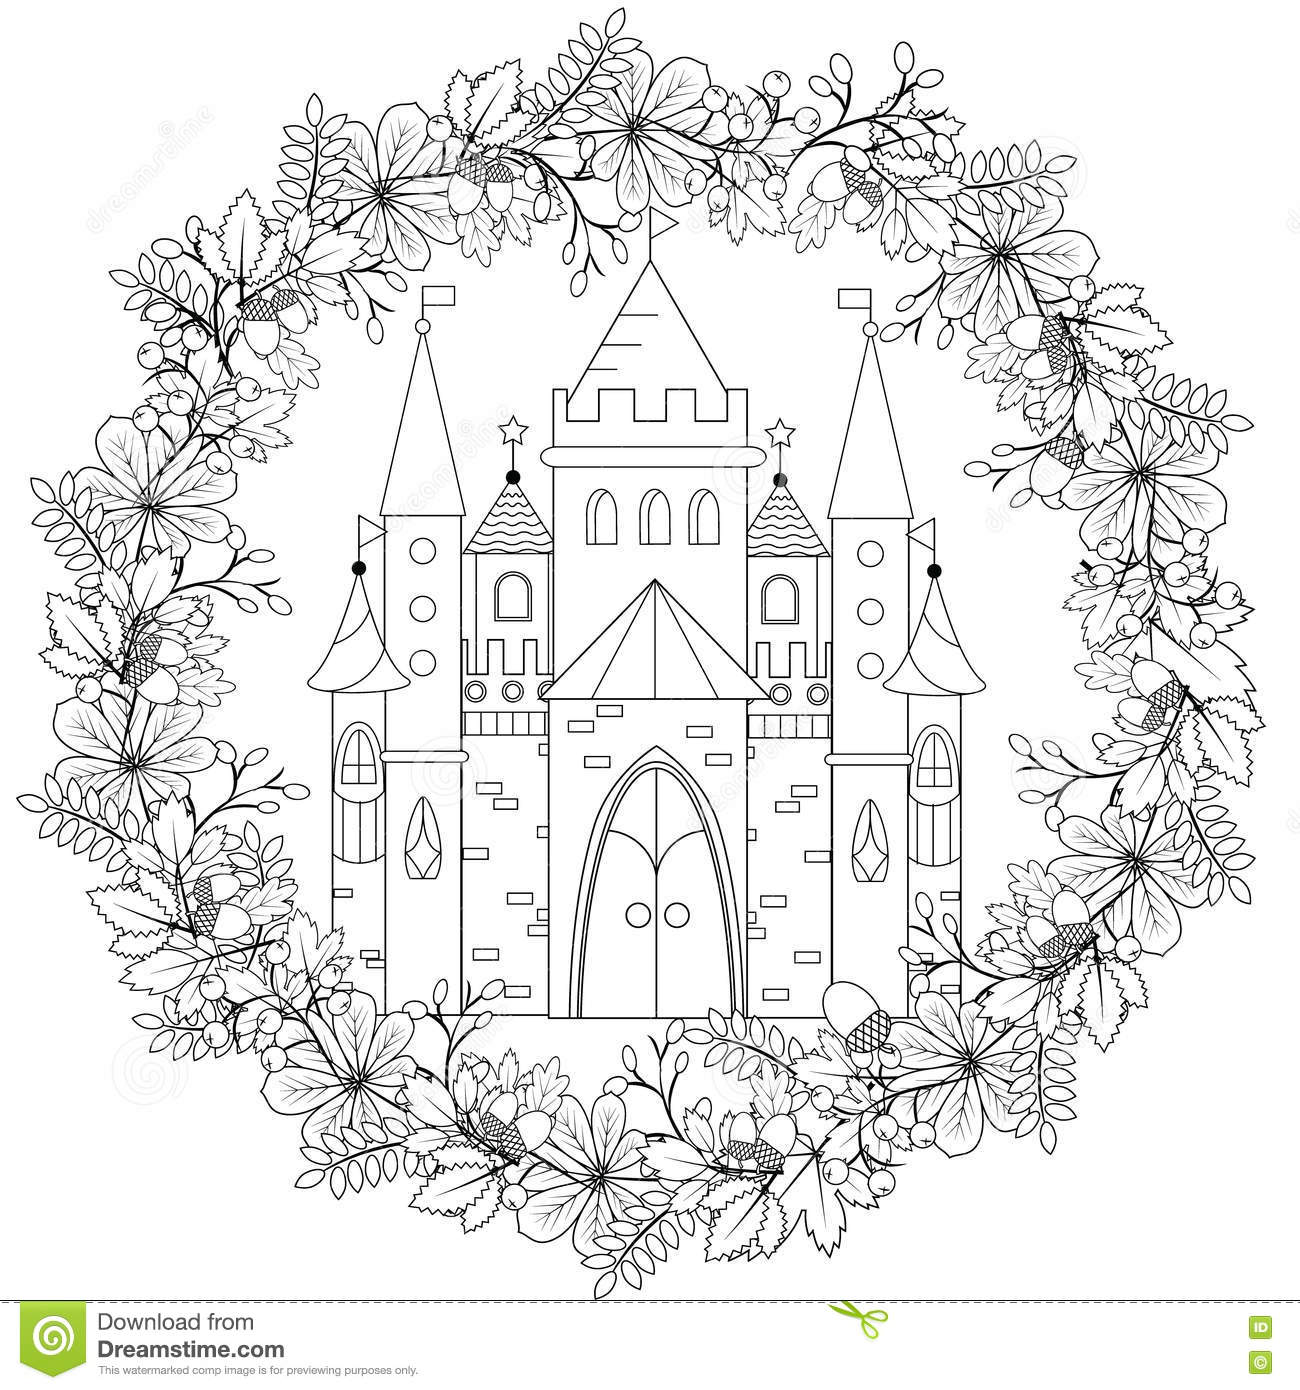 440 Coloring Book Page Wreath HD